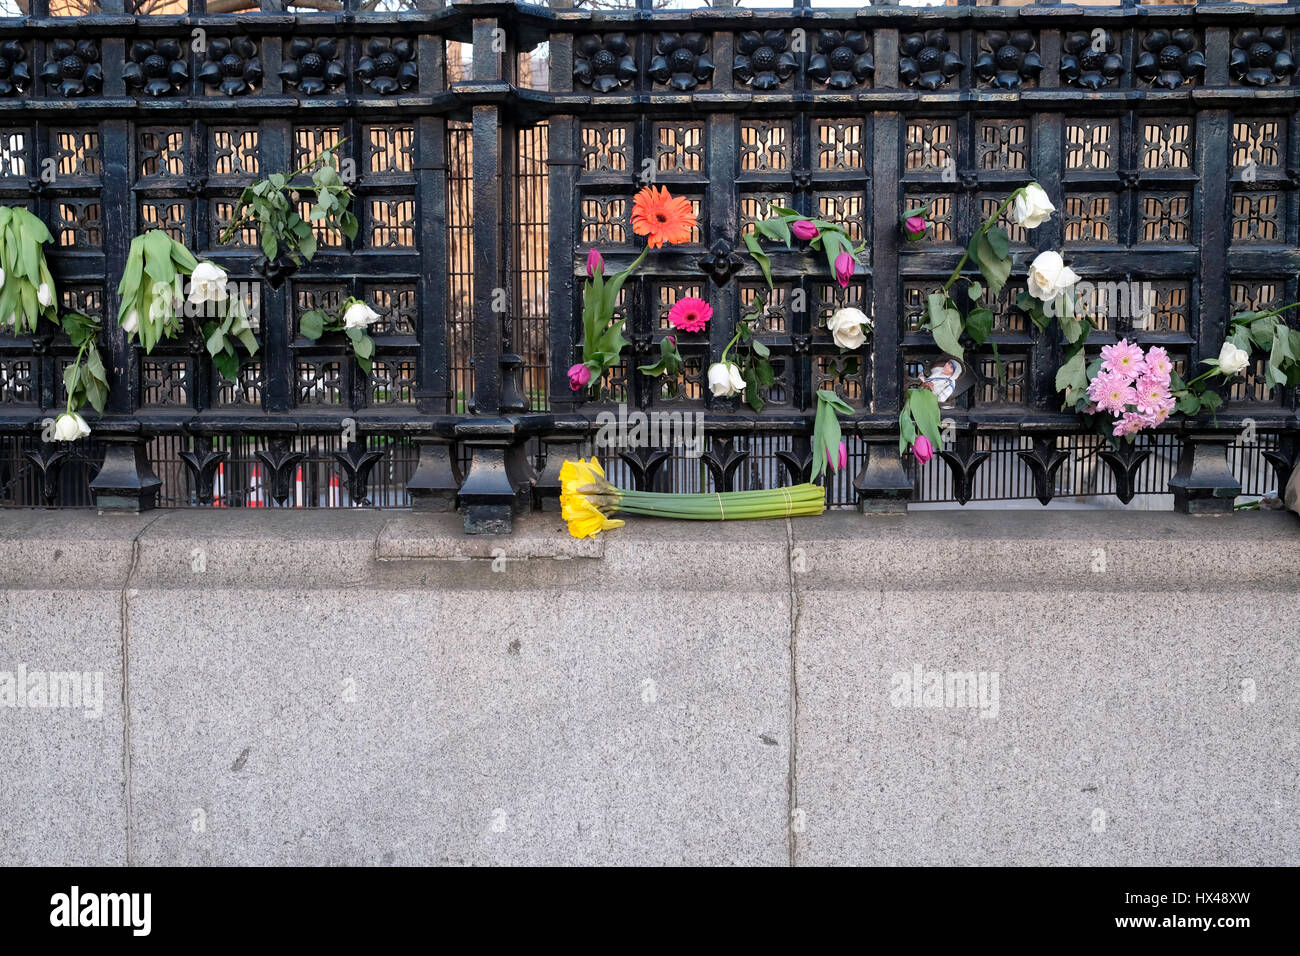 London, UK. 24th March 2017. Floral tributes to the victims of Westminster terror attack, Westminster, London. © - Stock Image